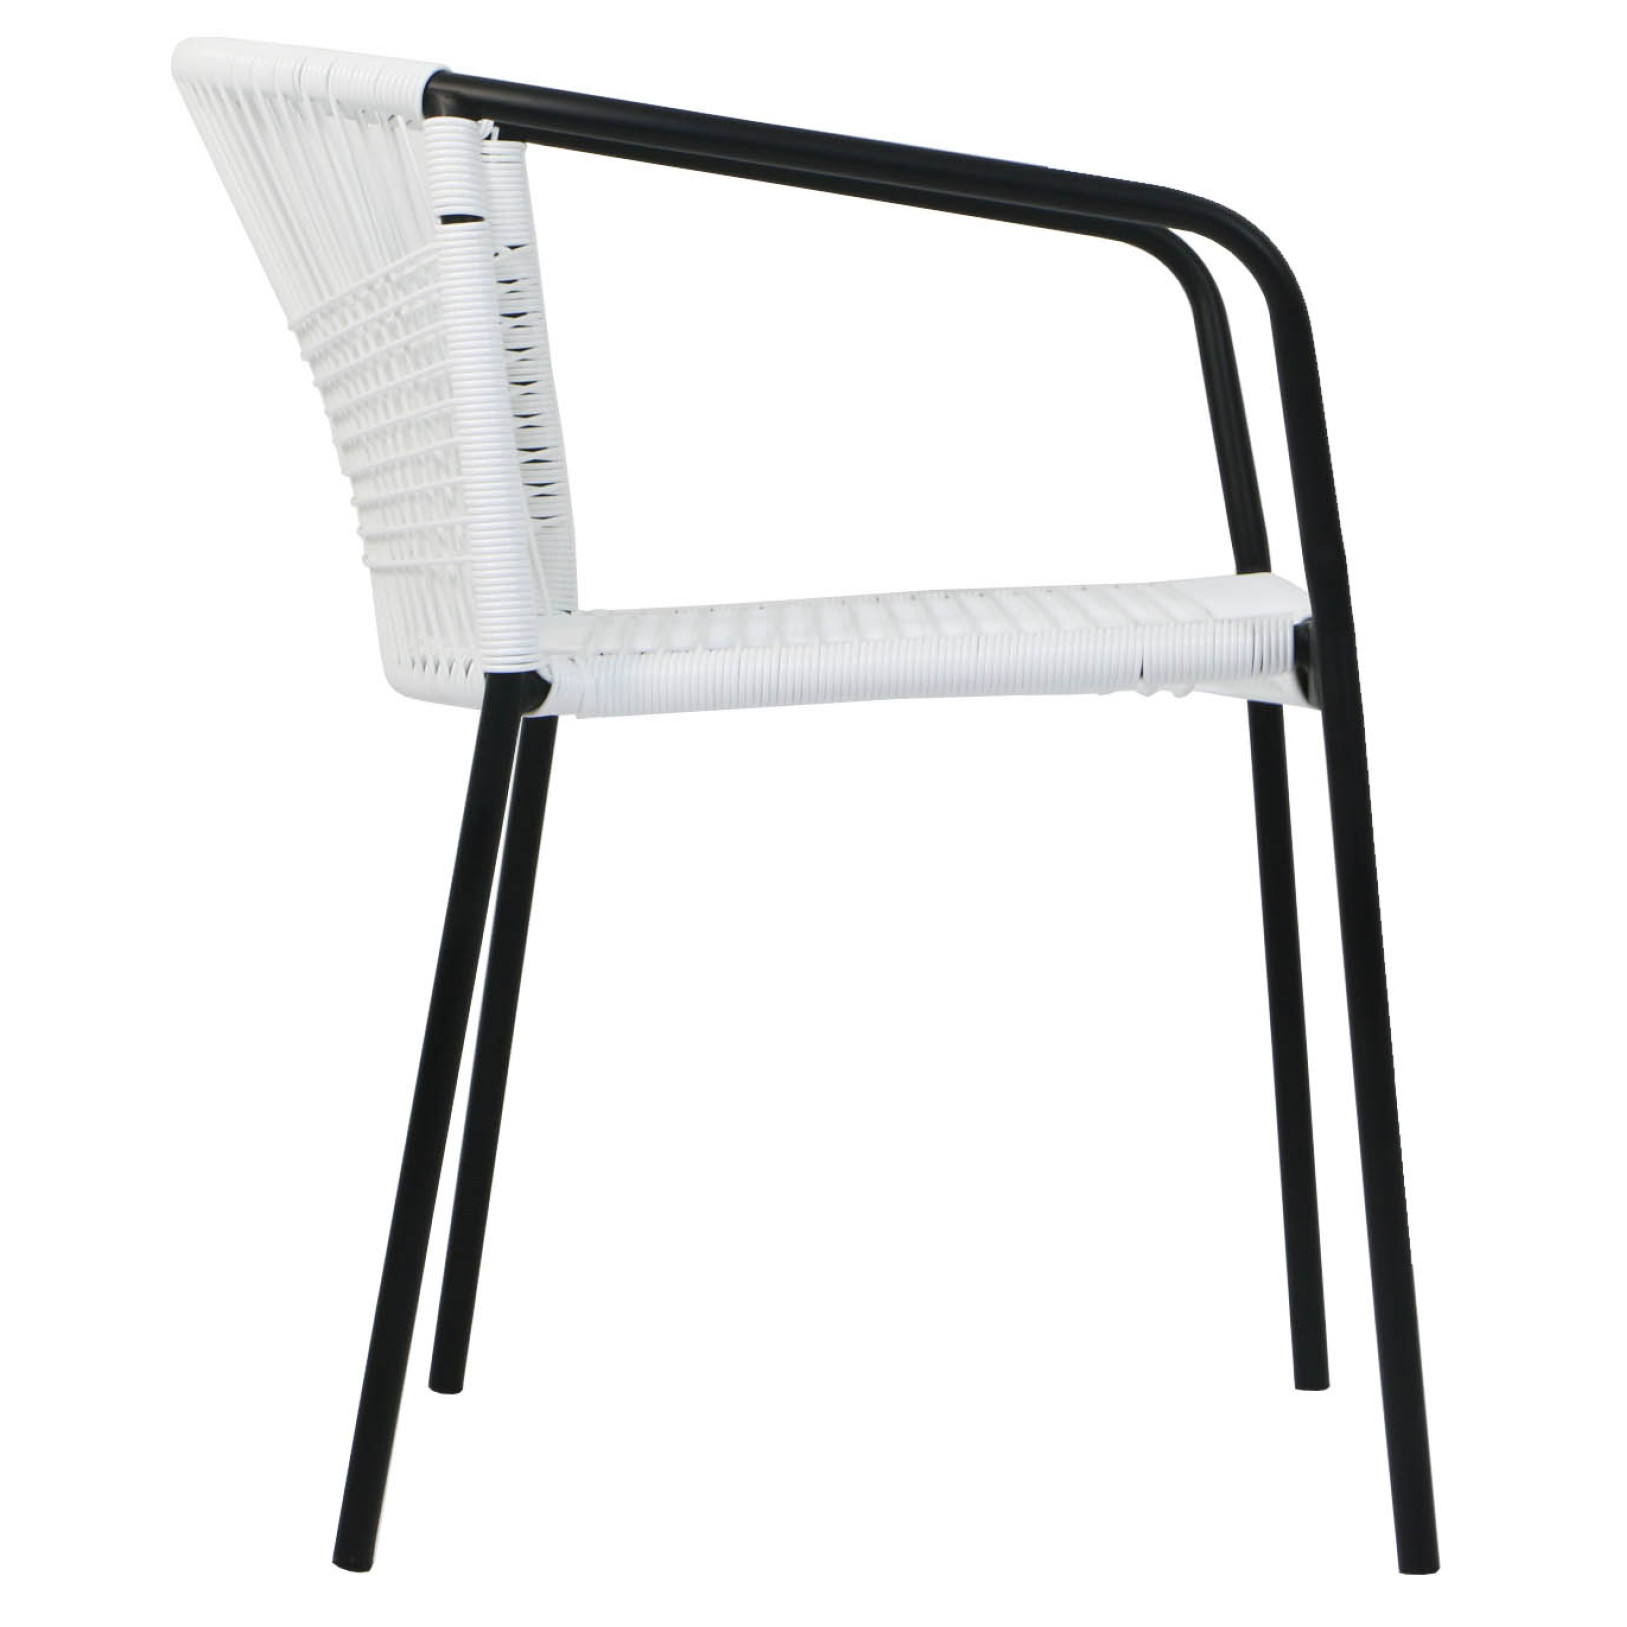 Monochrome Furniture Monochrome Patio Chair Designer Chairs Living Room